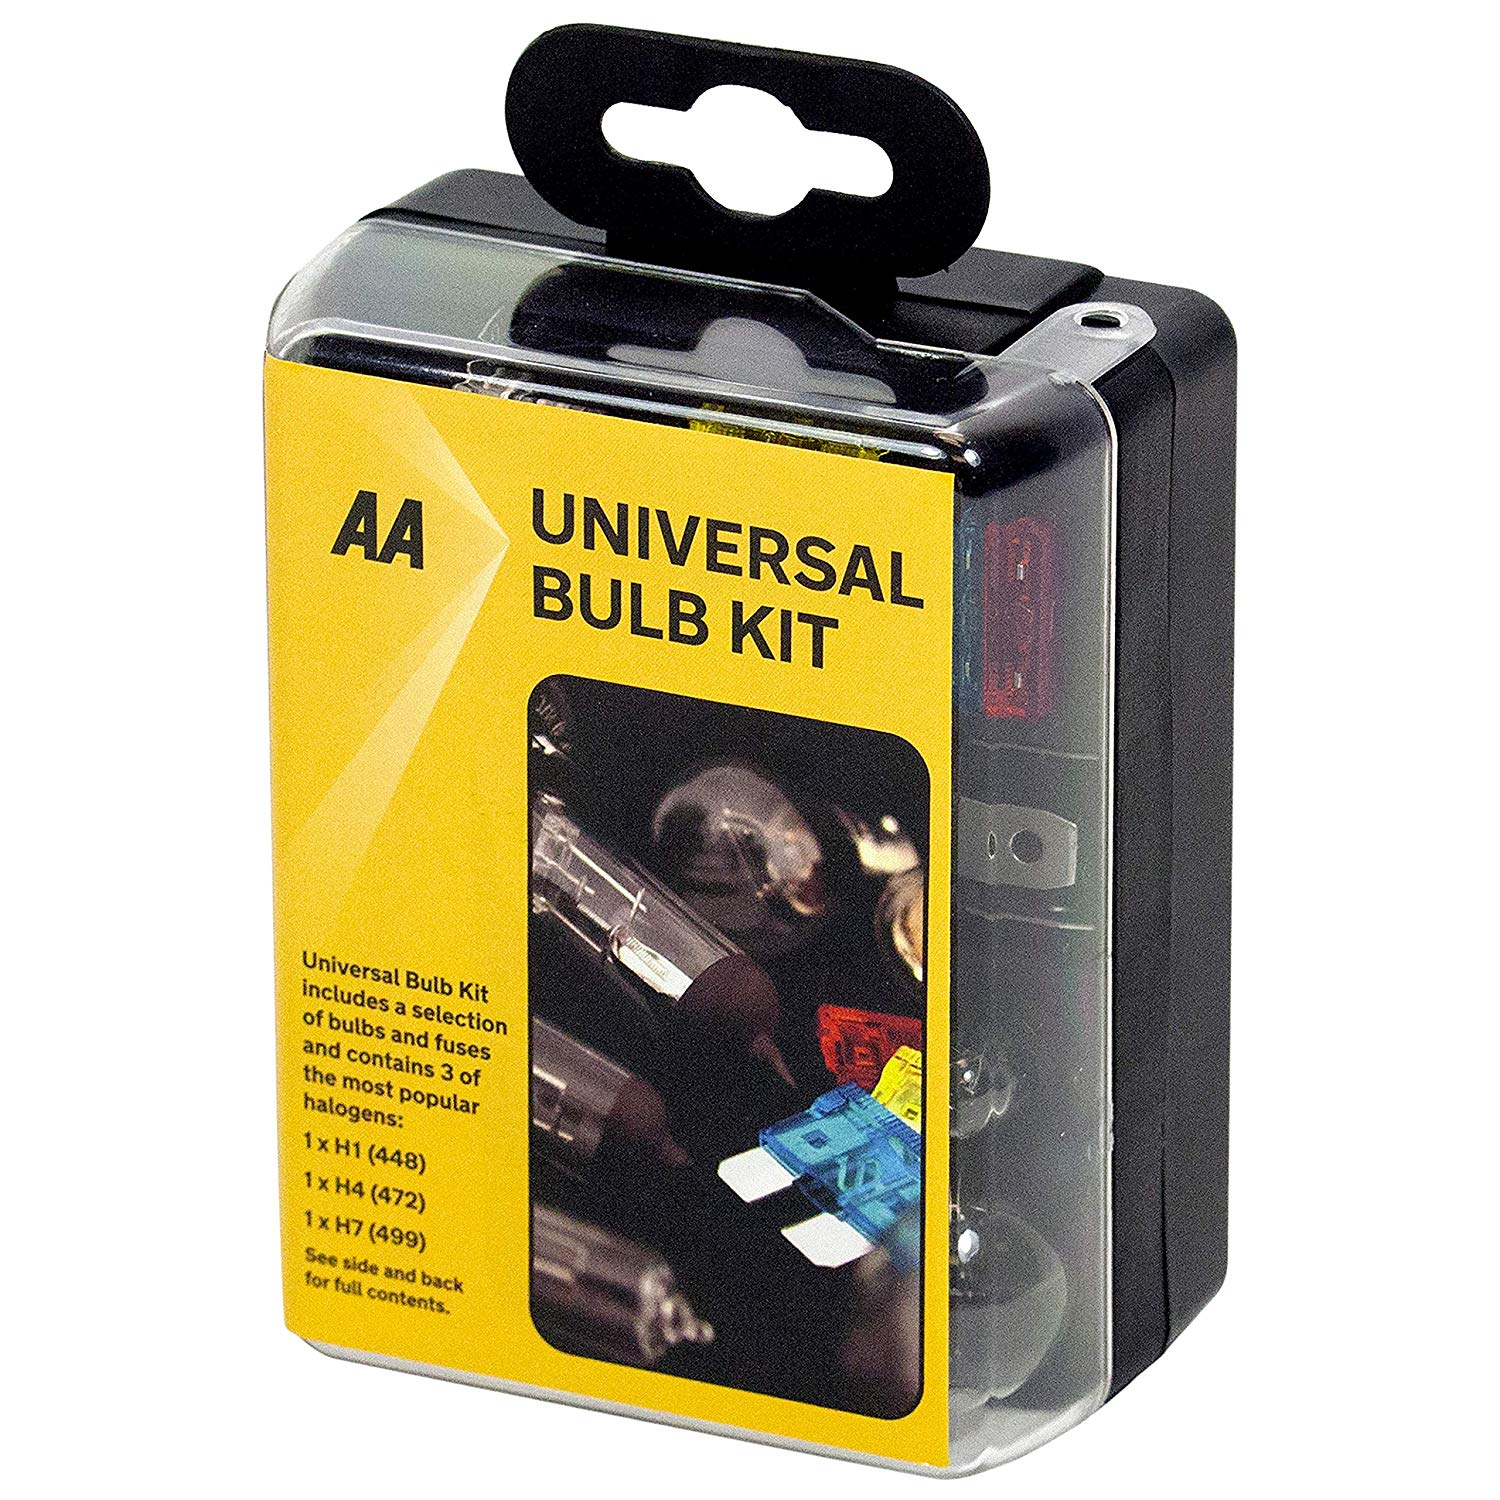 AA Compact Universal Bulb Kit for your car, inc H1, H4 and H7 bulbs(add-on item)